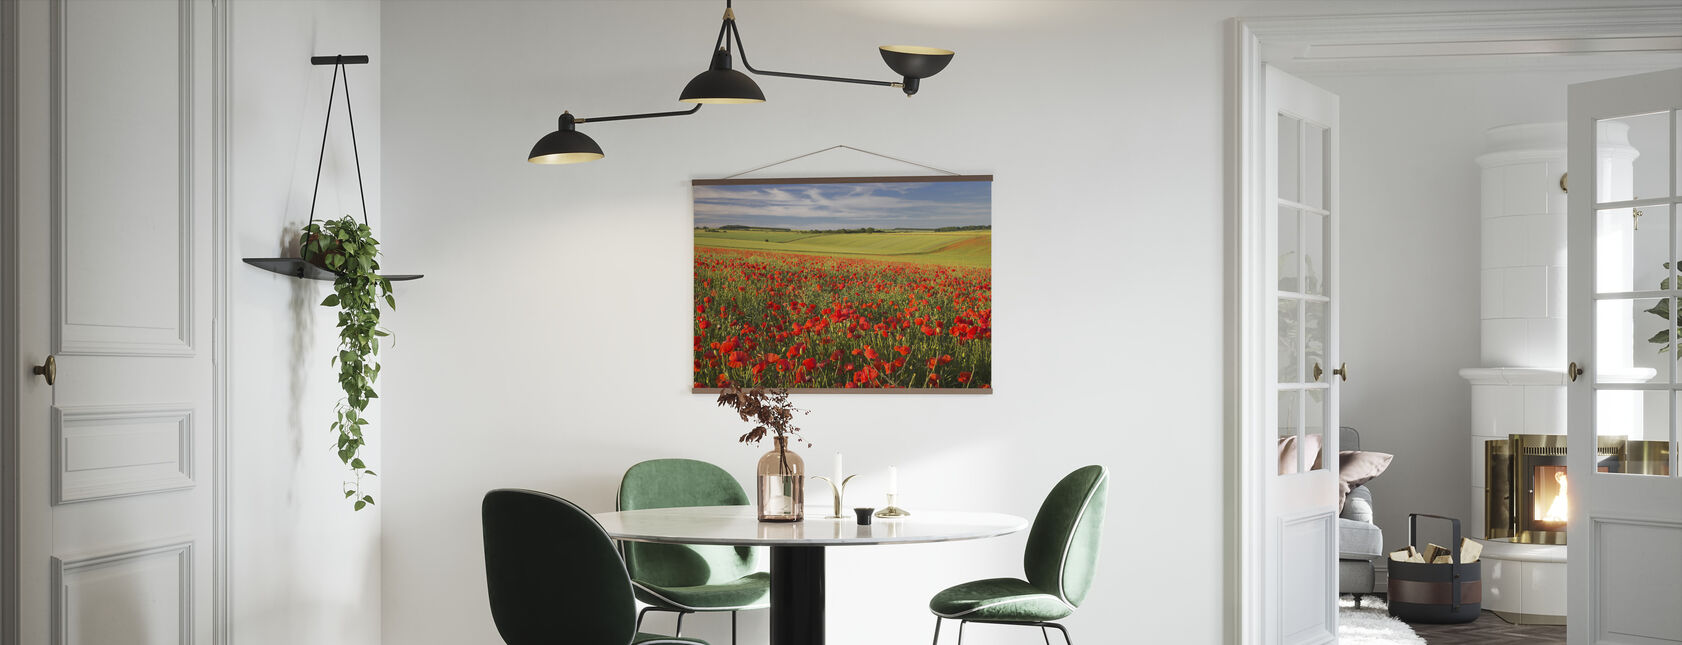 Sea of Poppies - Poster - Kitchen